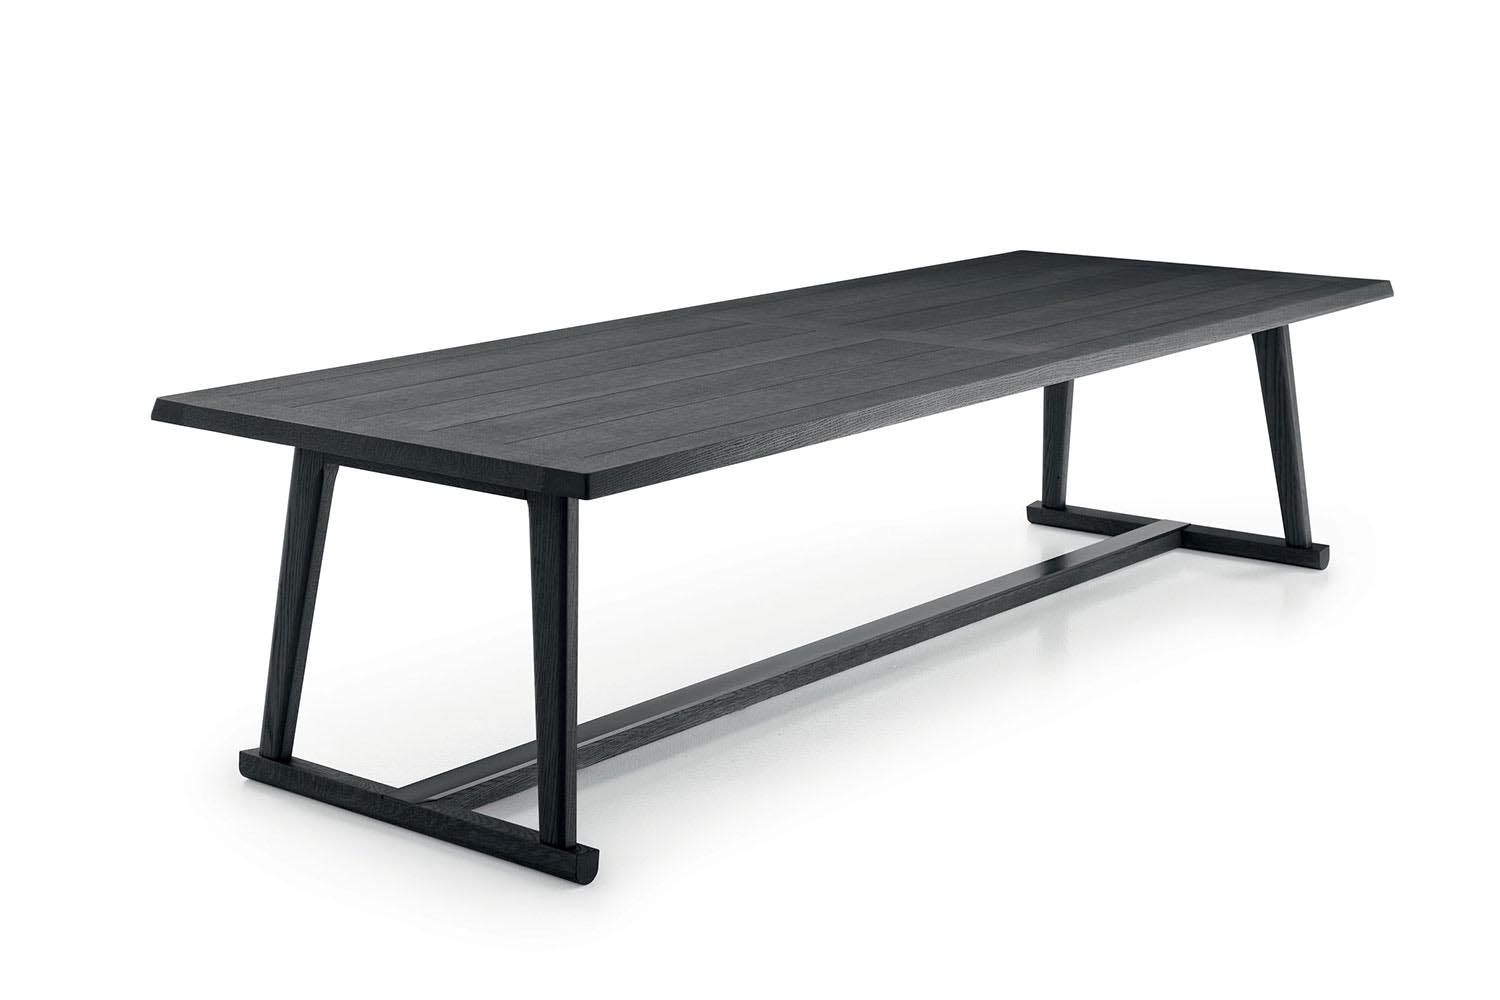 Recipio '14 Table by Antonio Citterio for Maxalto